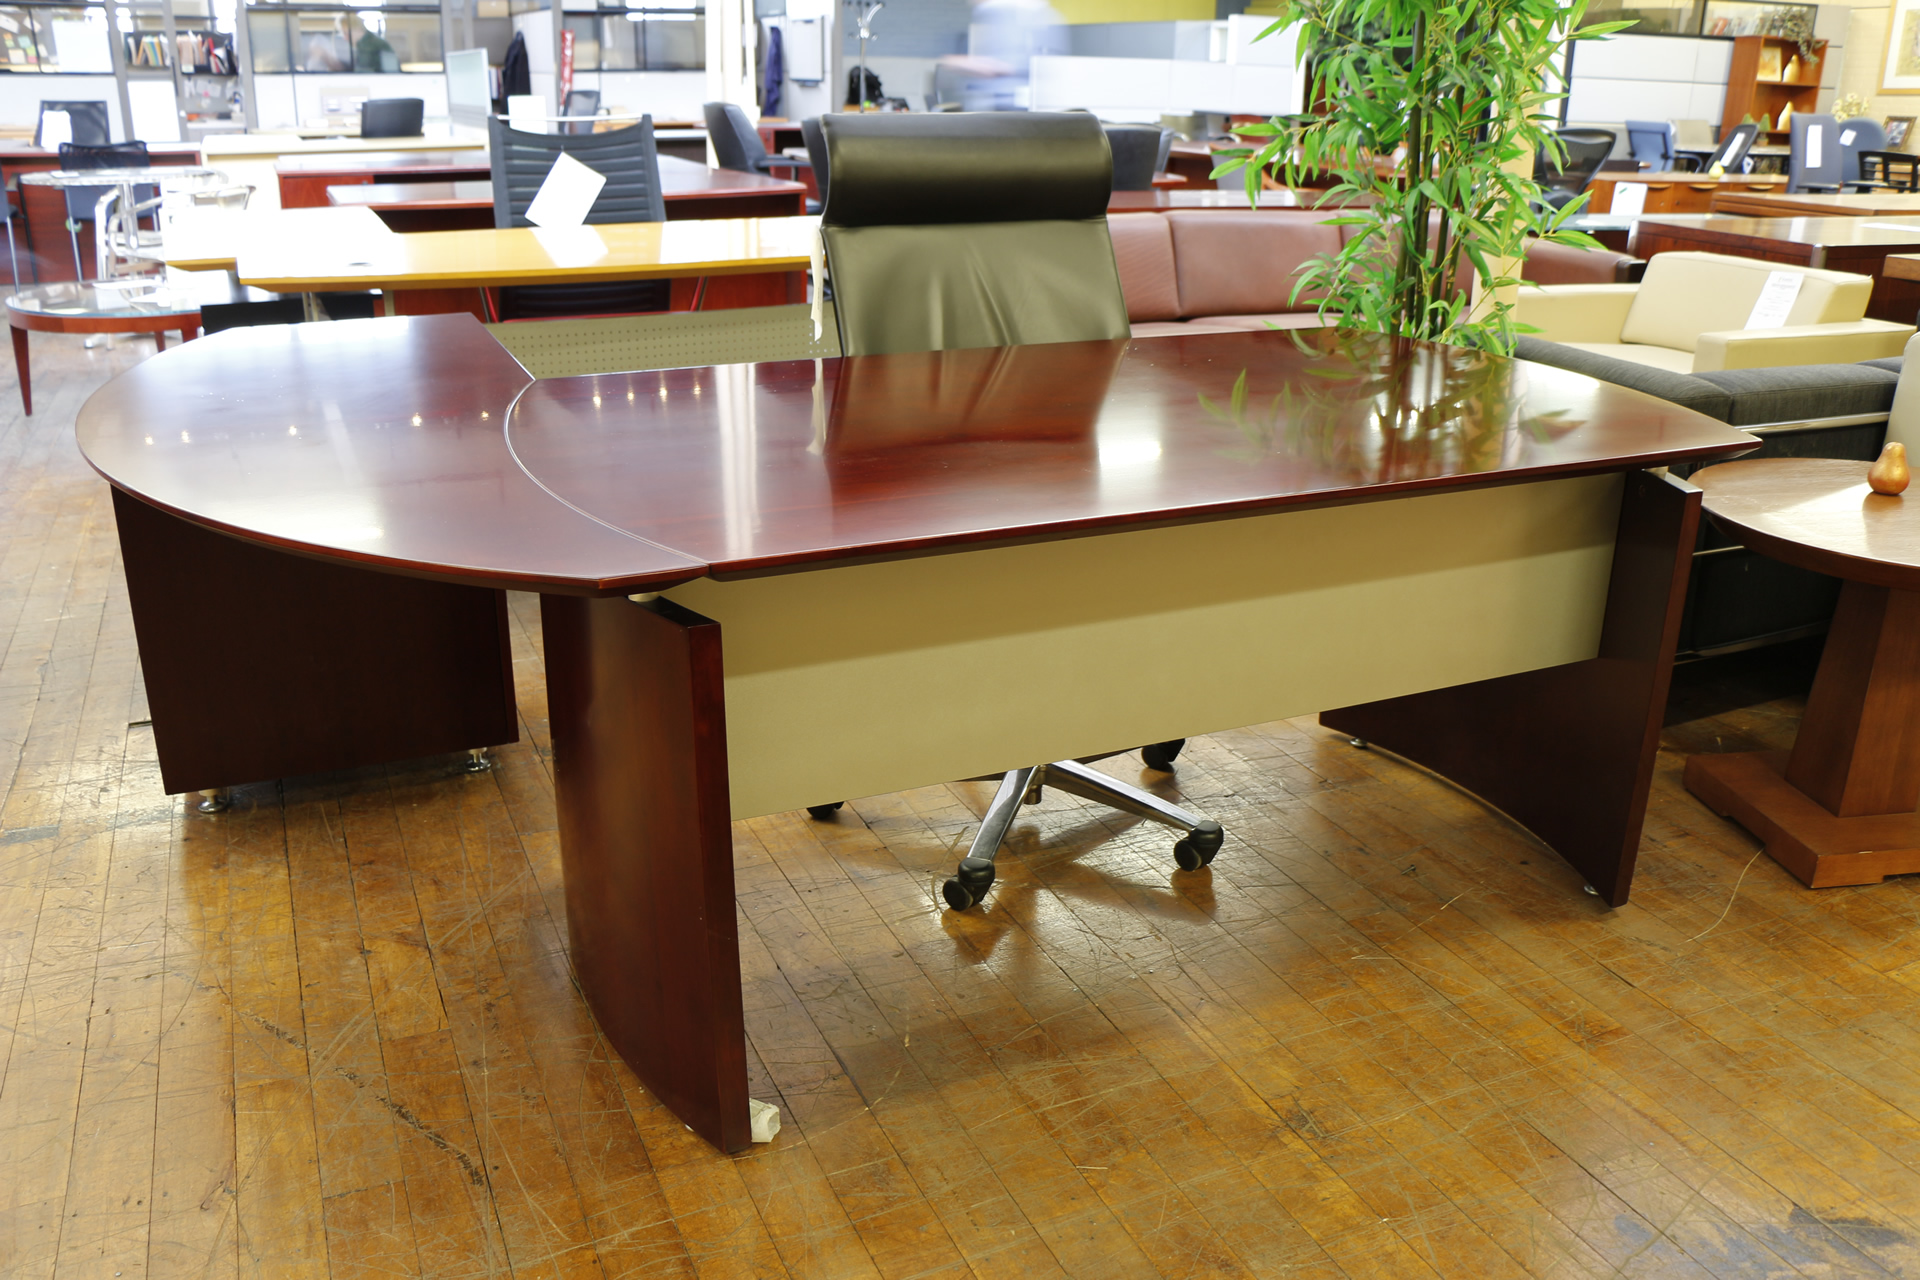 peartreeofficefurniture_peartreeofficefurniture_mg_4965.jpg